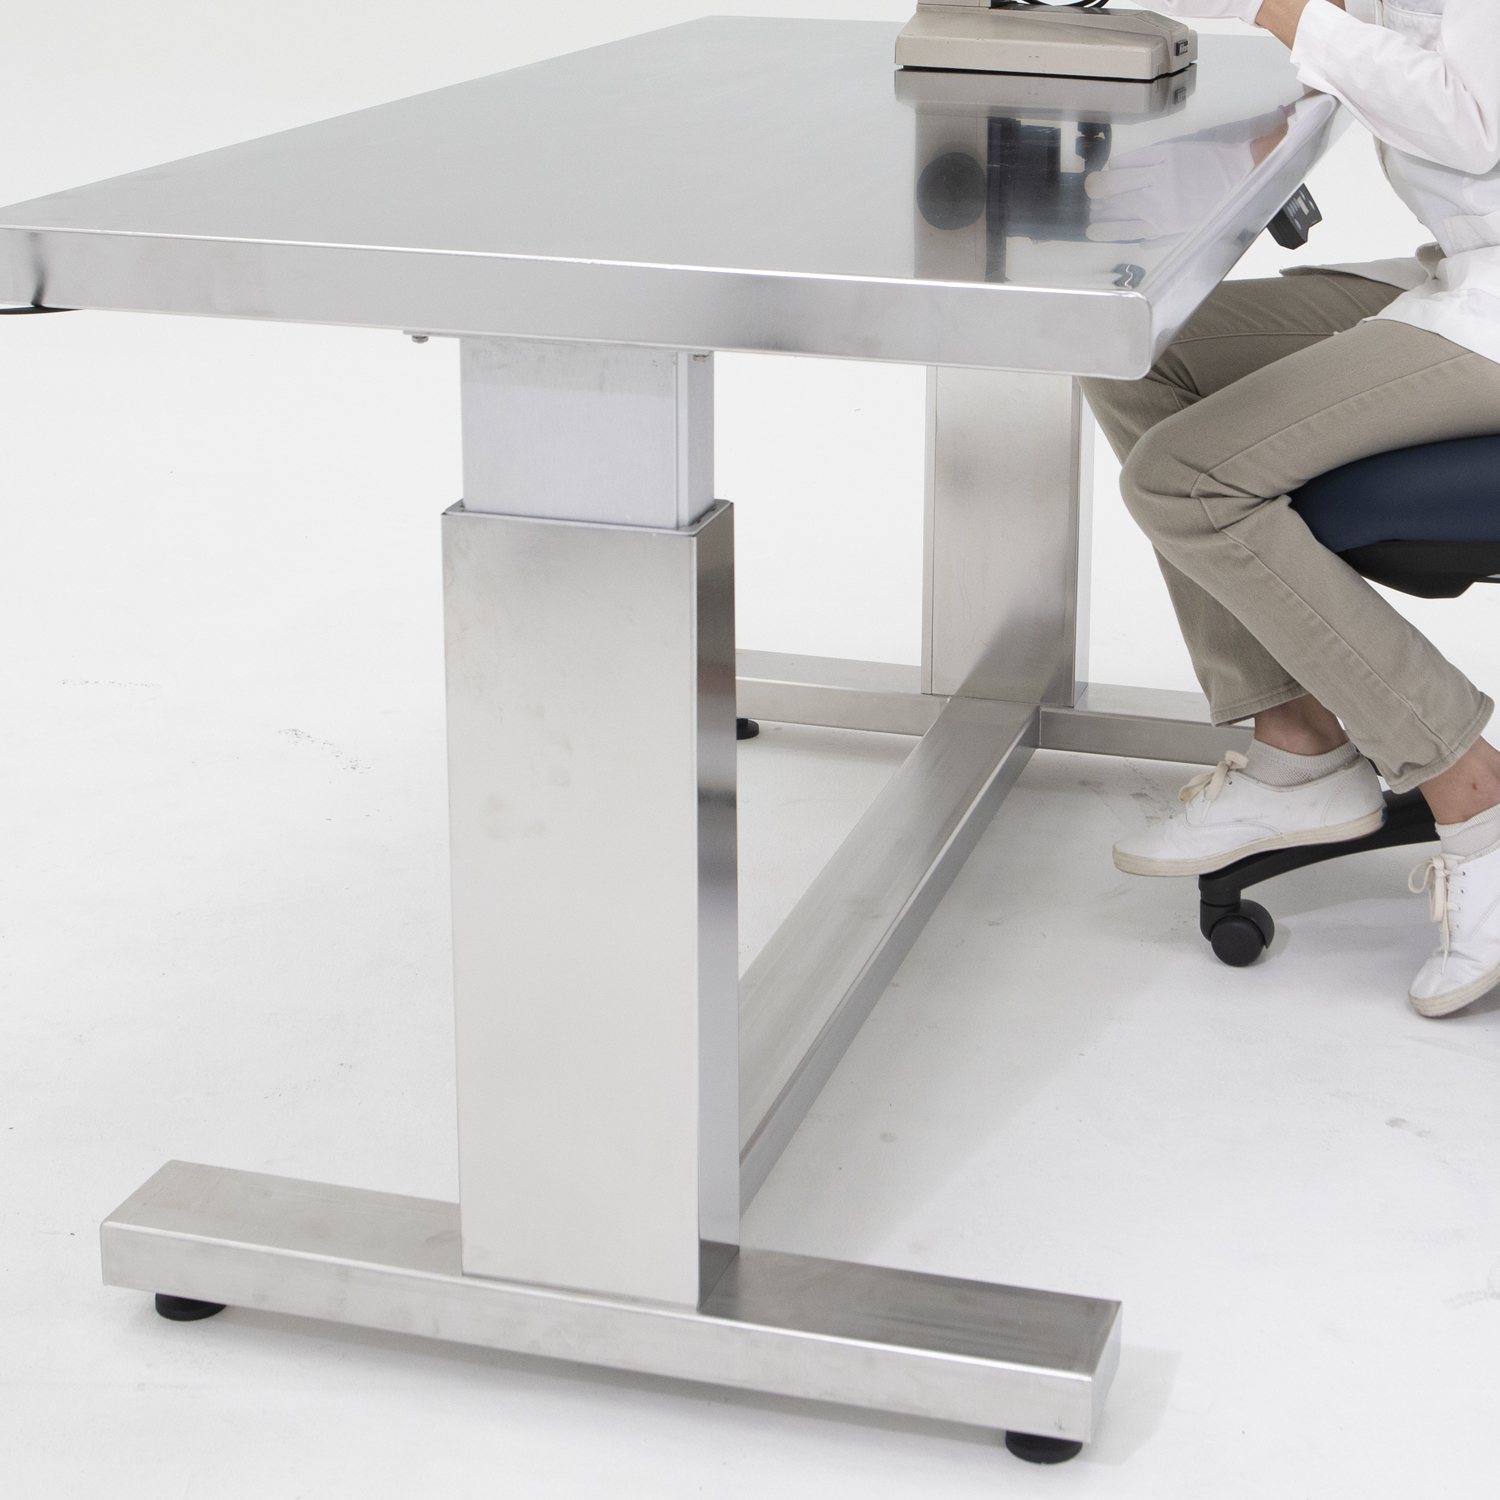 Reinforced Frame of ErgoHeight Adjustable-Height Cleanroom Table